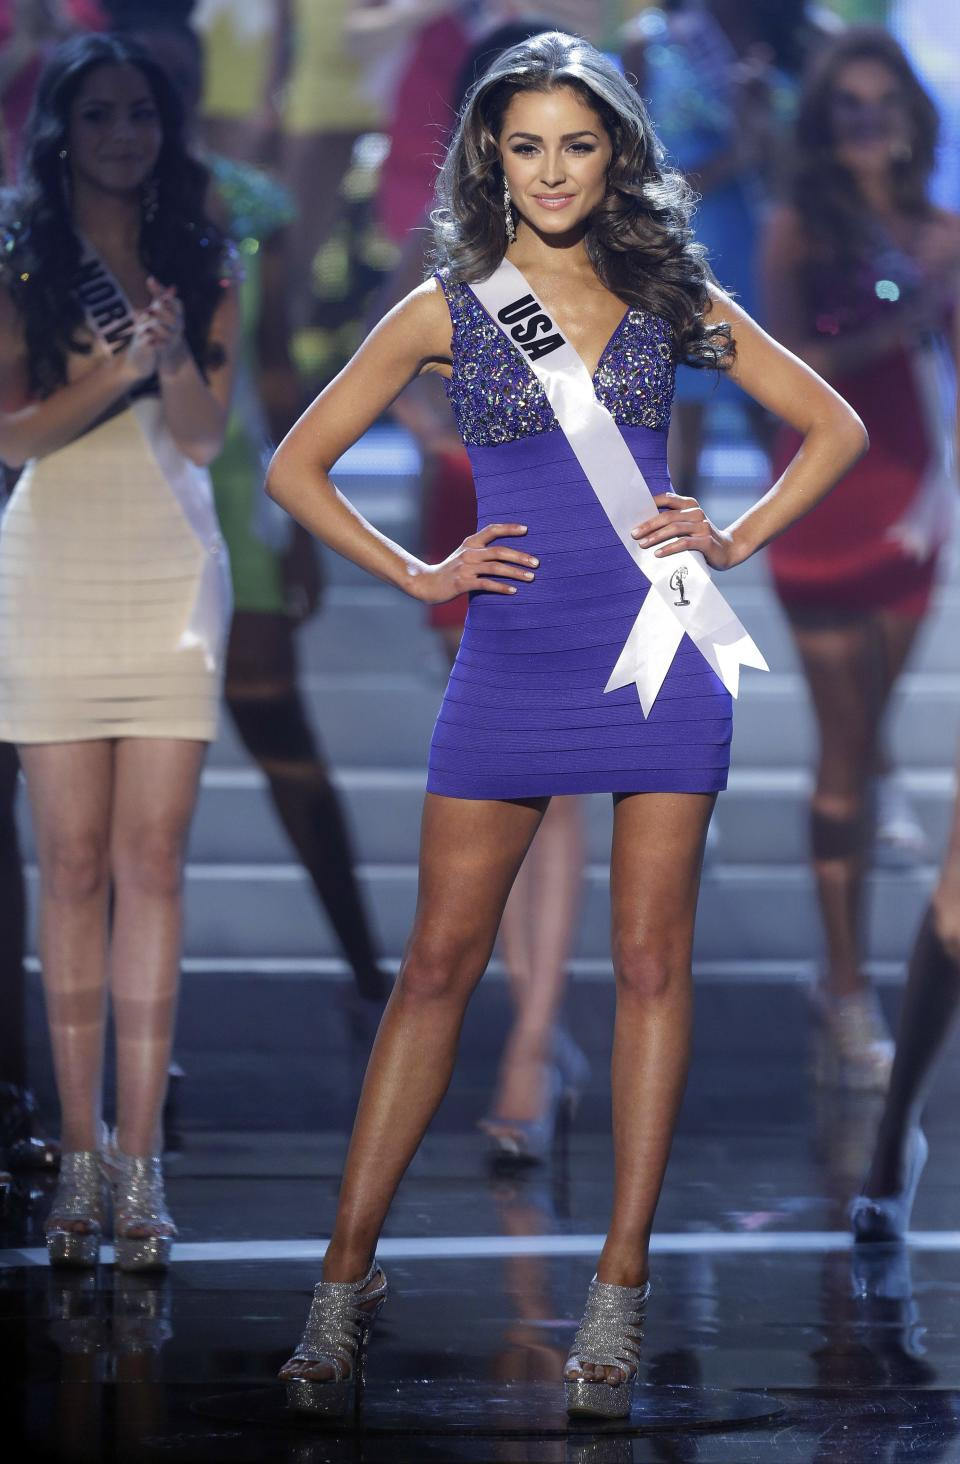 Miss USA Olivia Culpo steps out as she is named one of the final 16 contestants during the Miss Universe pageant, Wednesday, Dec. 19, 2012, in Las Vegas. (AP Photo/Julie Jacobson)